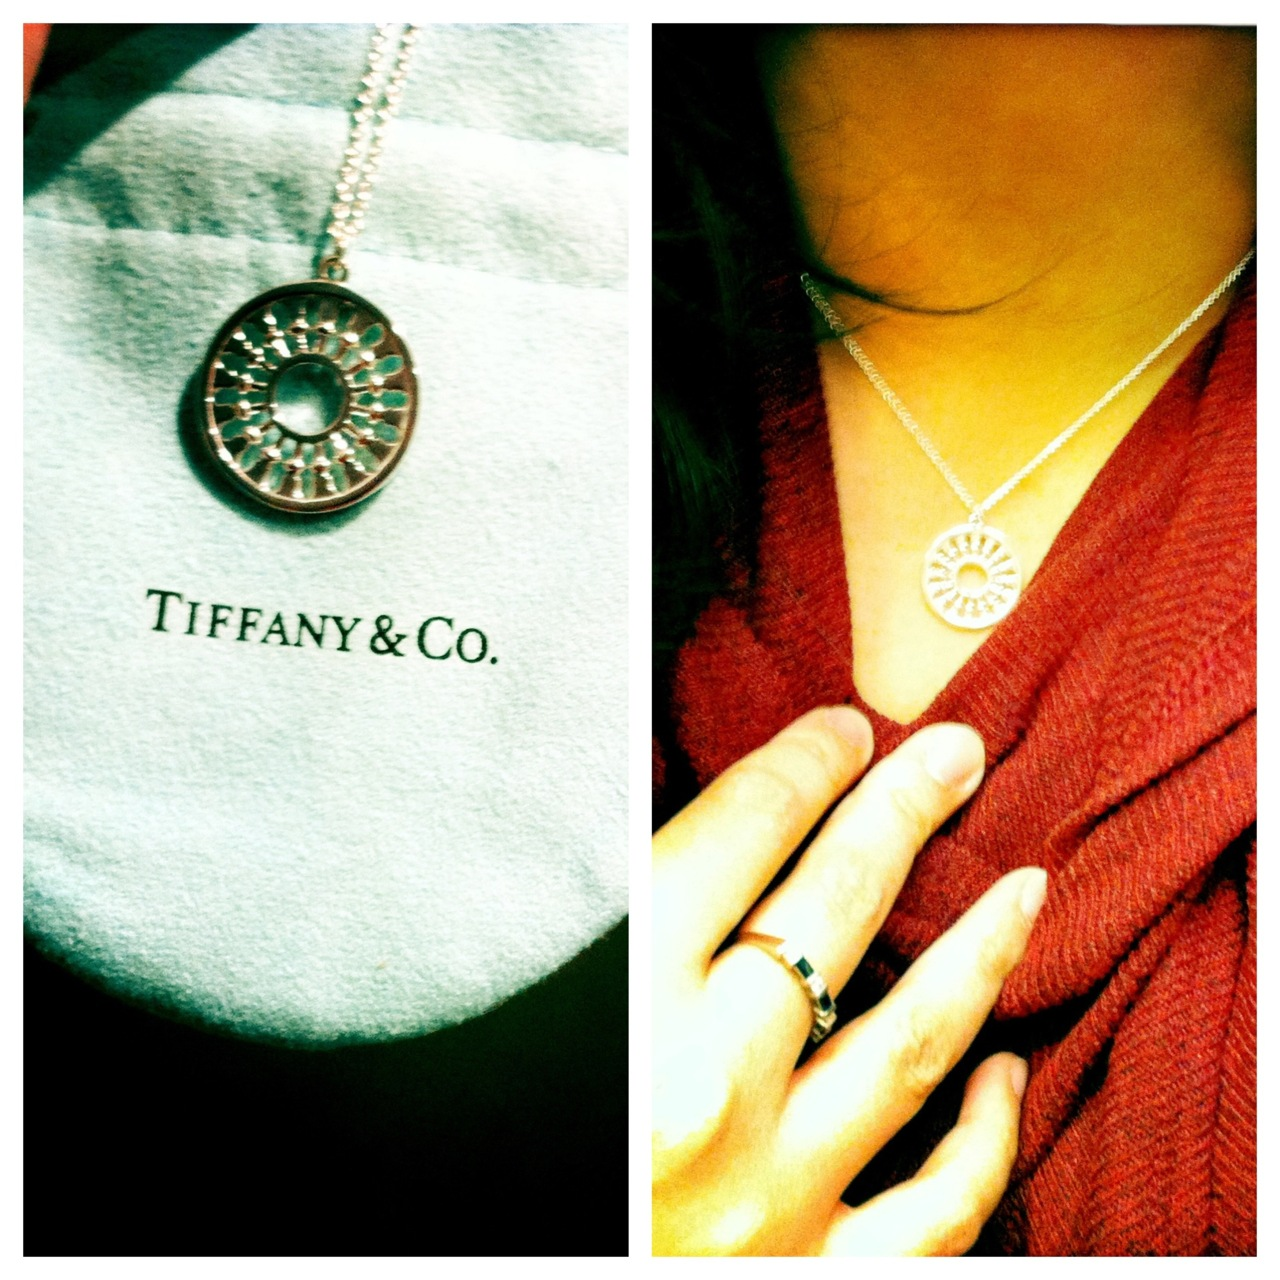 That's right. A necklace from Tiffany & Co. Thanks, Hubs!